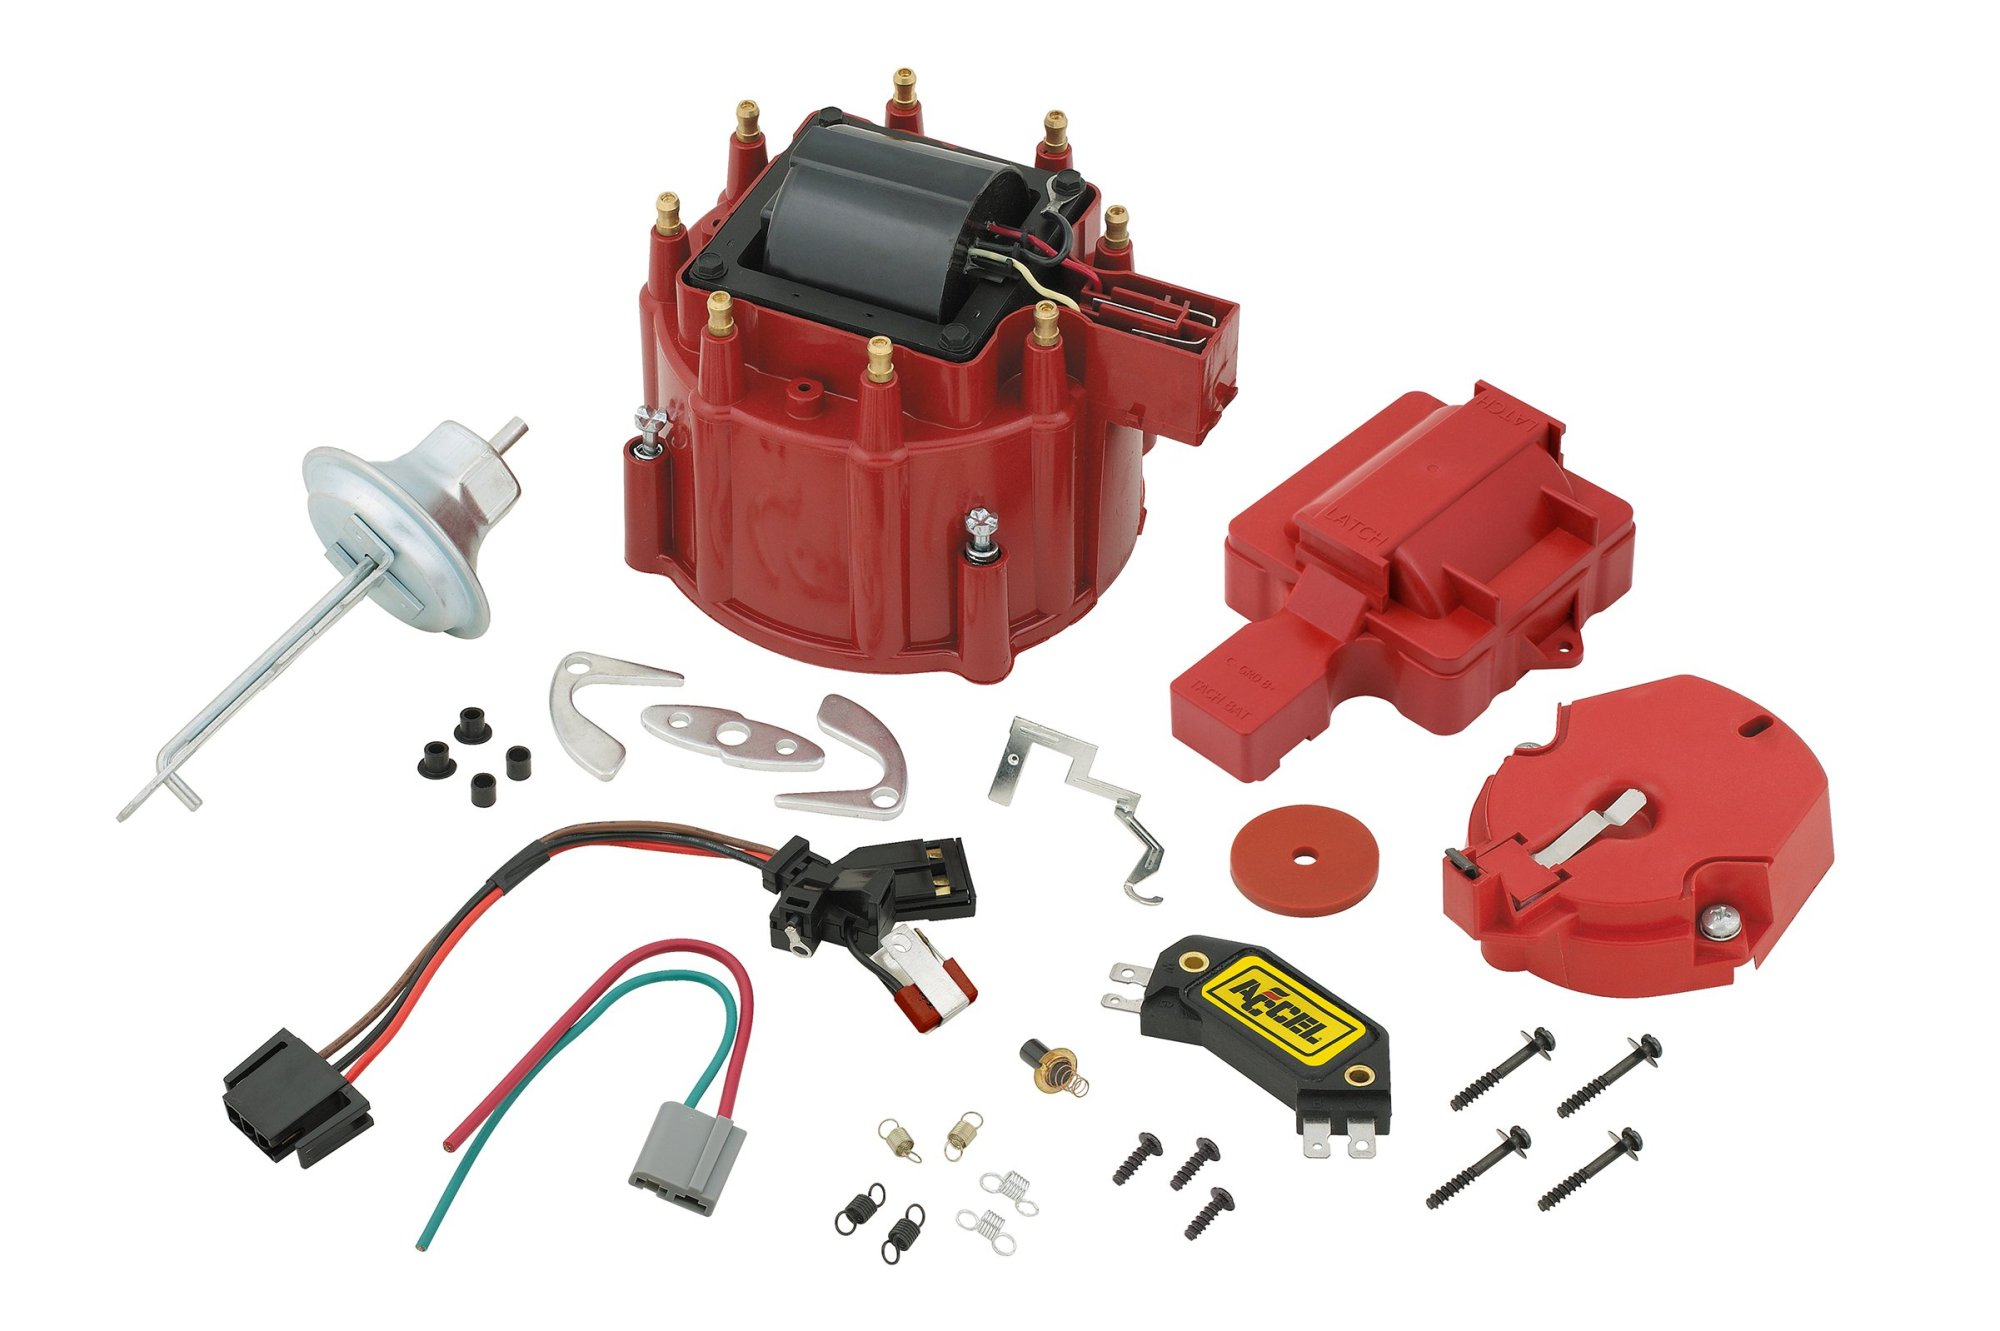 hight resolution of 8200acc tune up kit gm hei applications 1975 1989 image